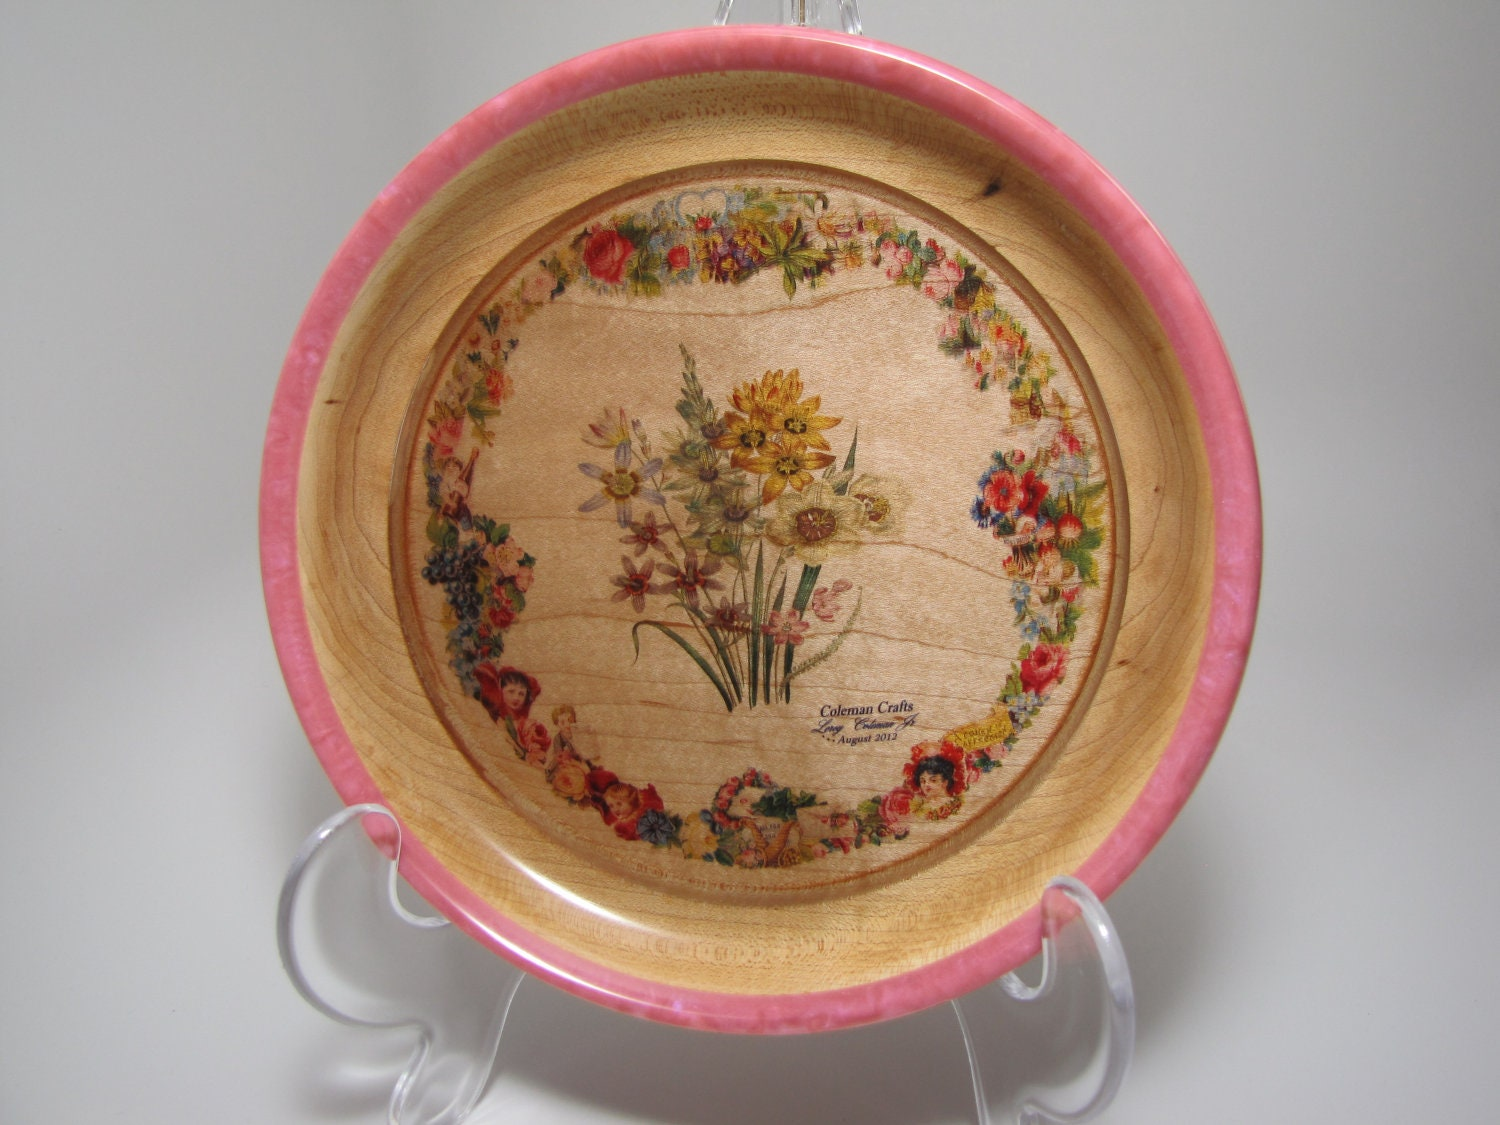 Handcrafted Hard Maple Platter with Floral Arrangement